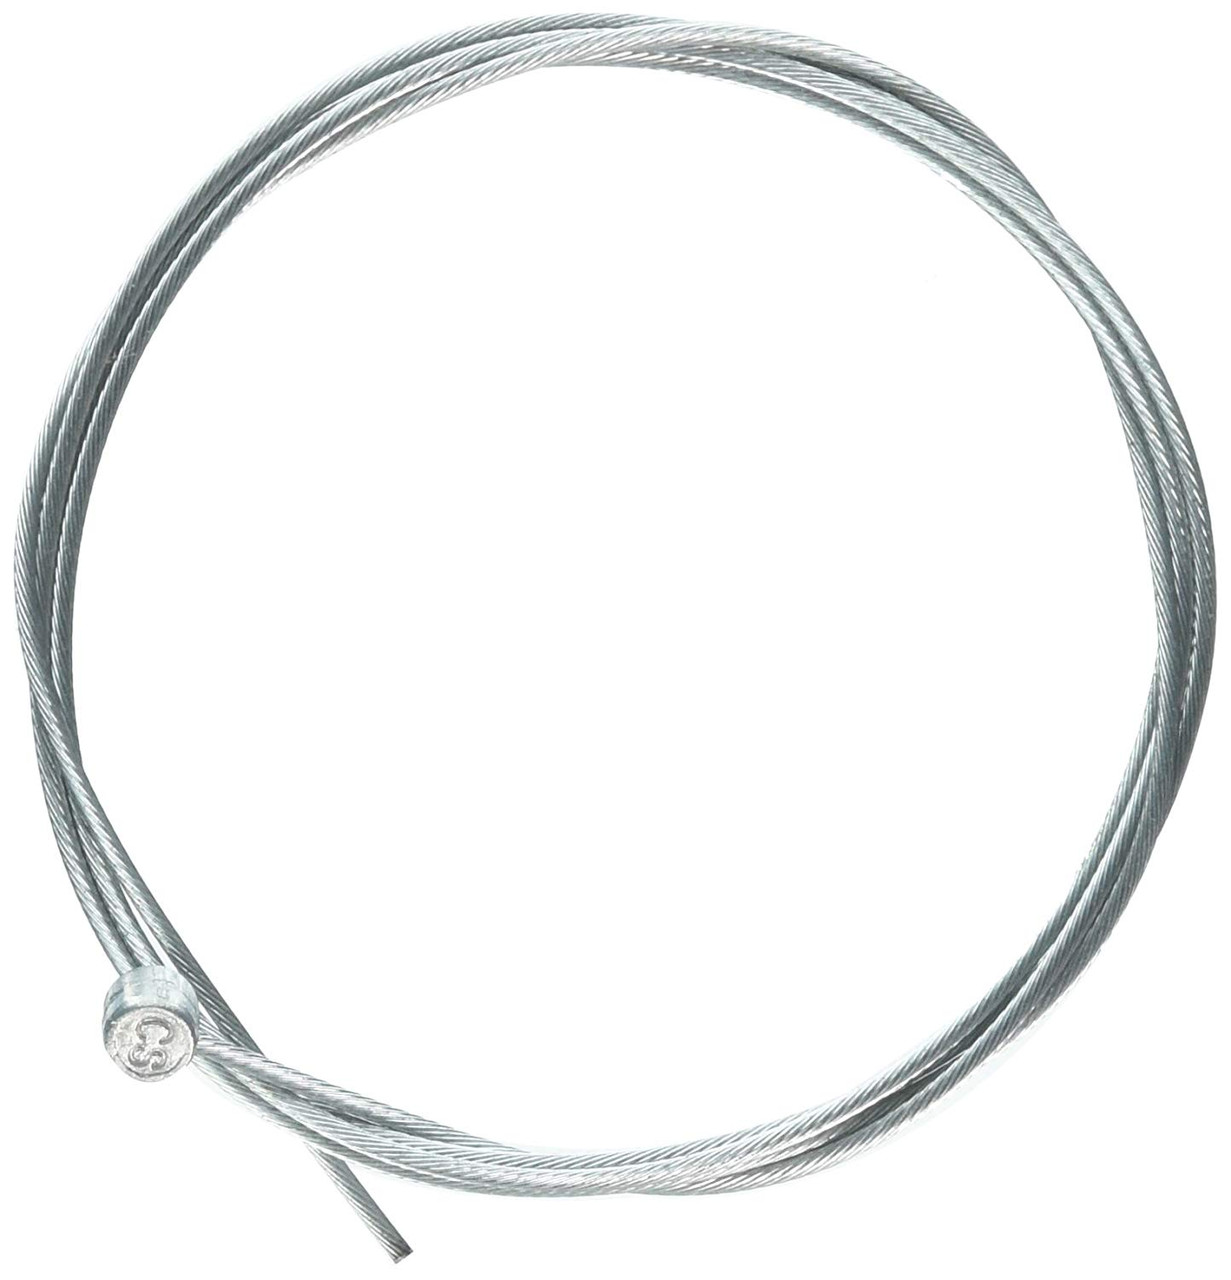 Drum Workshop Cable Only for New Lp1500